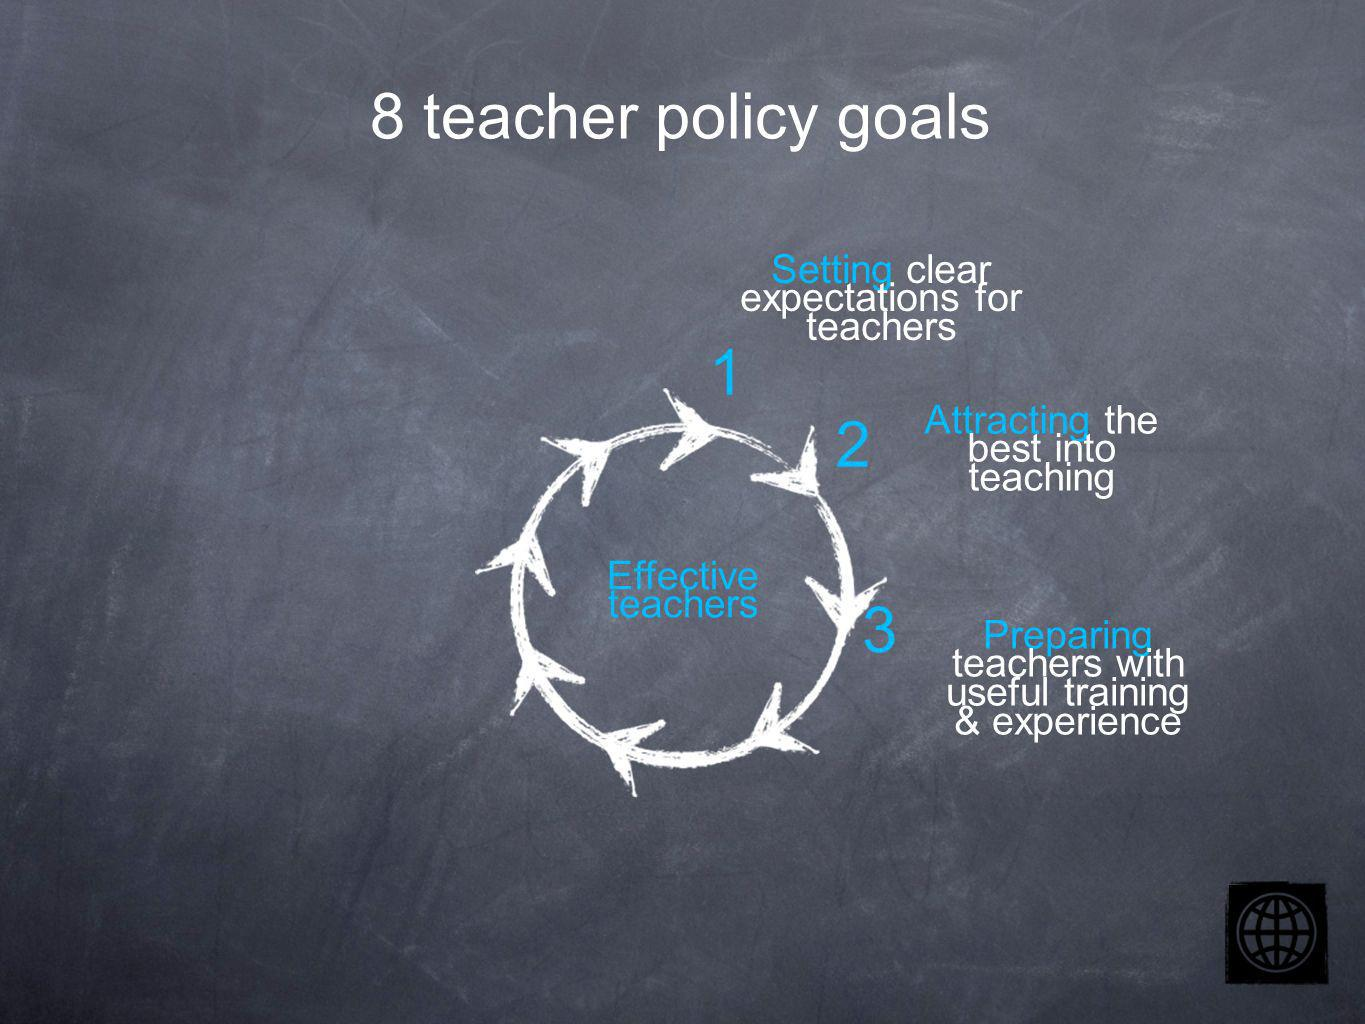 Setting clear expectations for teachers Attracting the best into teaching Preparing teachers with useful training & experience Effective teachers 2 3 1 8 teacher policy goals